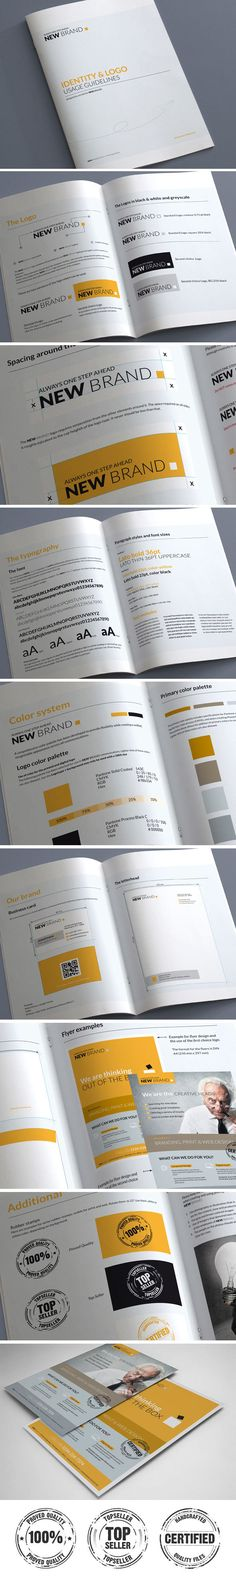 Brand Guidelines – 20 Pages Published by Maan Ali: Corporate Design, Brand Identity Design, Graphic Design Branding, Brochure Design, Typography Design, Corporate Identity, Business Design, Web Design, Book Design